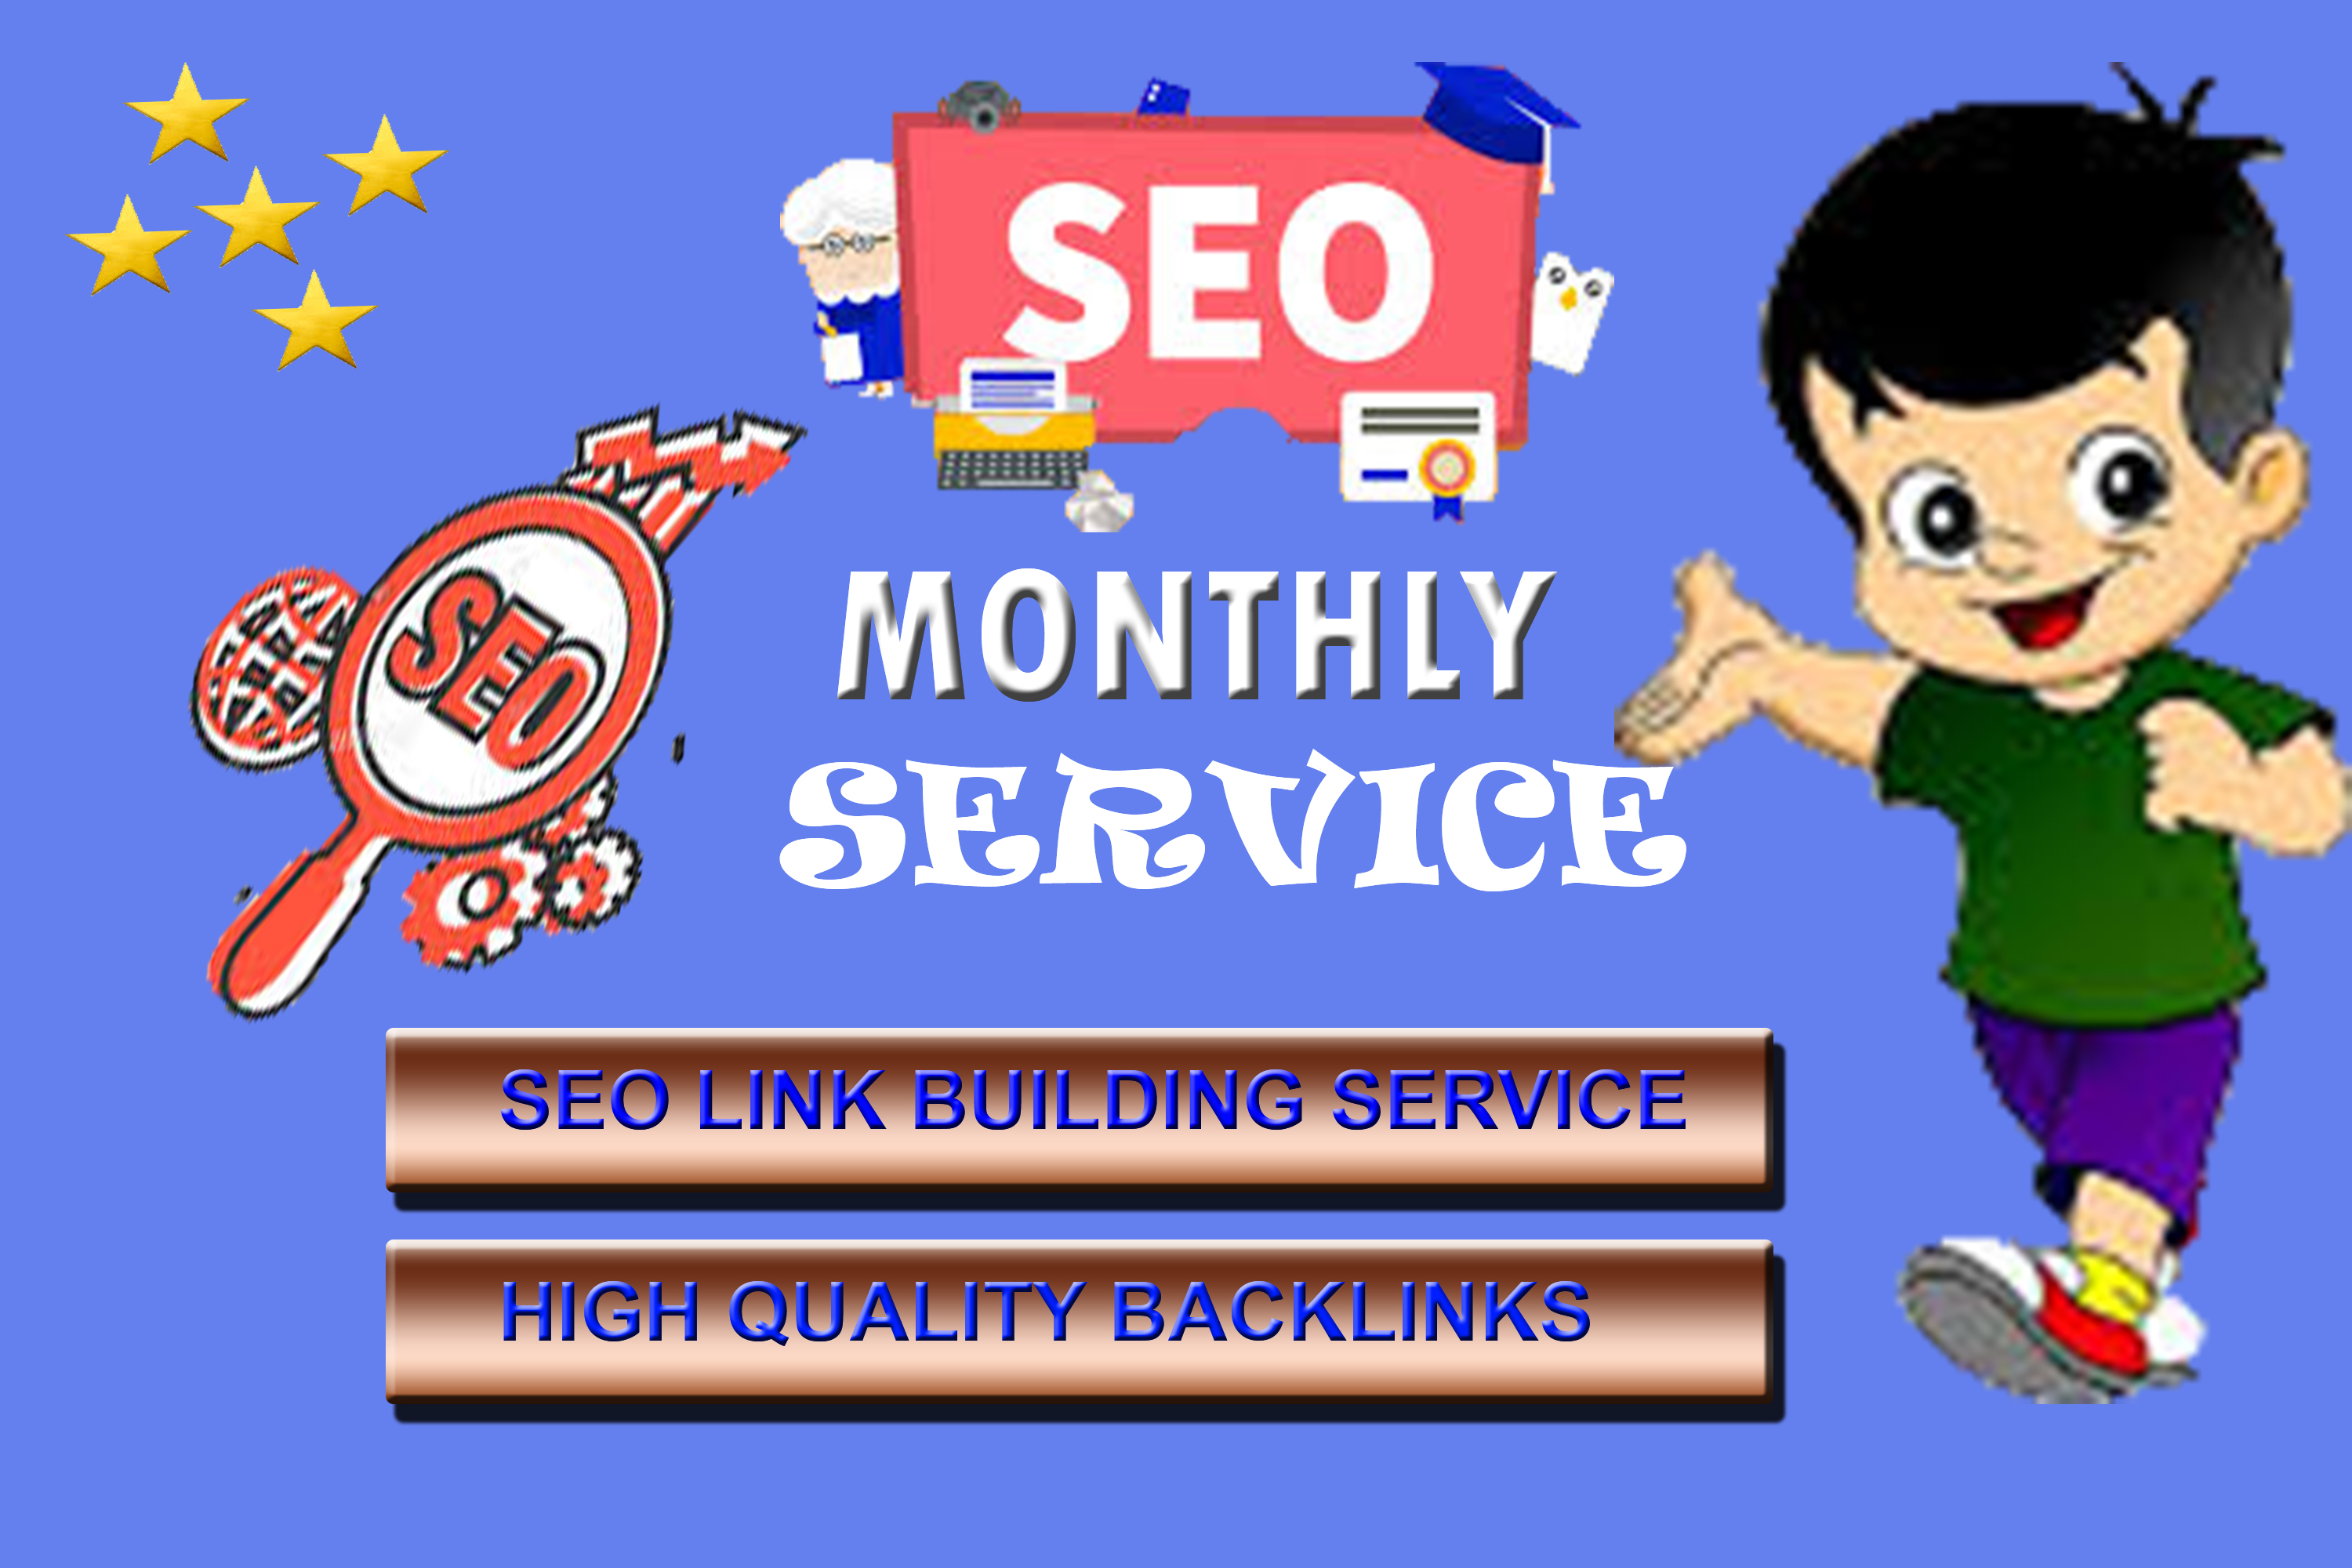 I will provide monthly high authority SEO backlinks service with google rank for your site